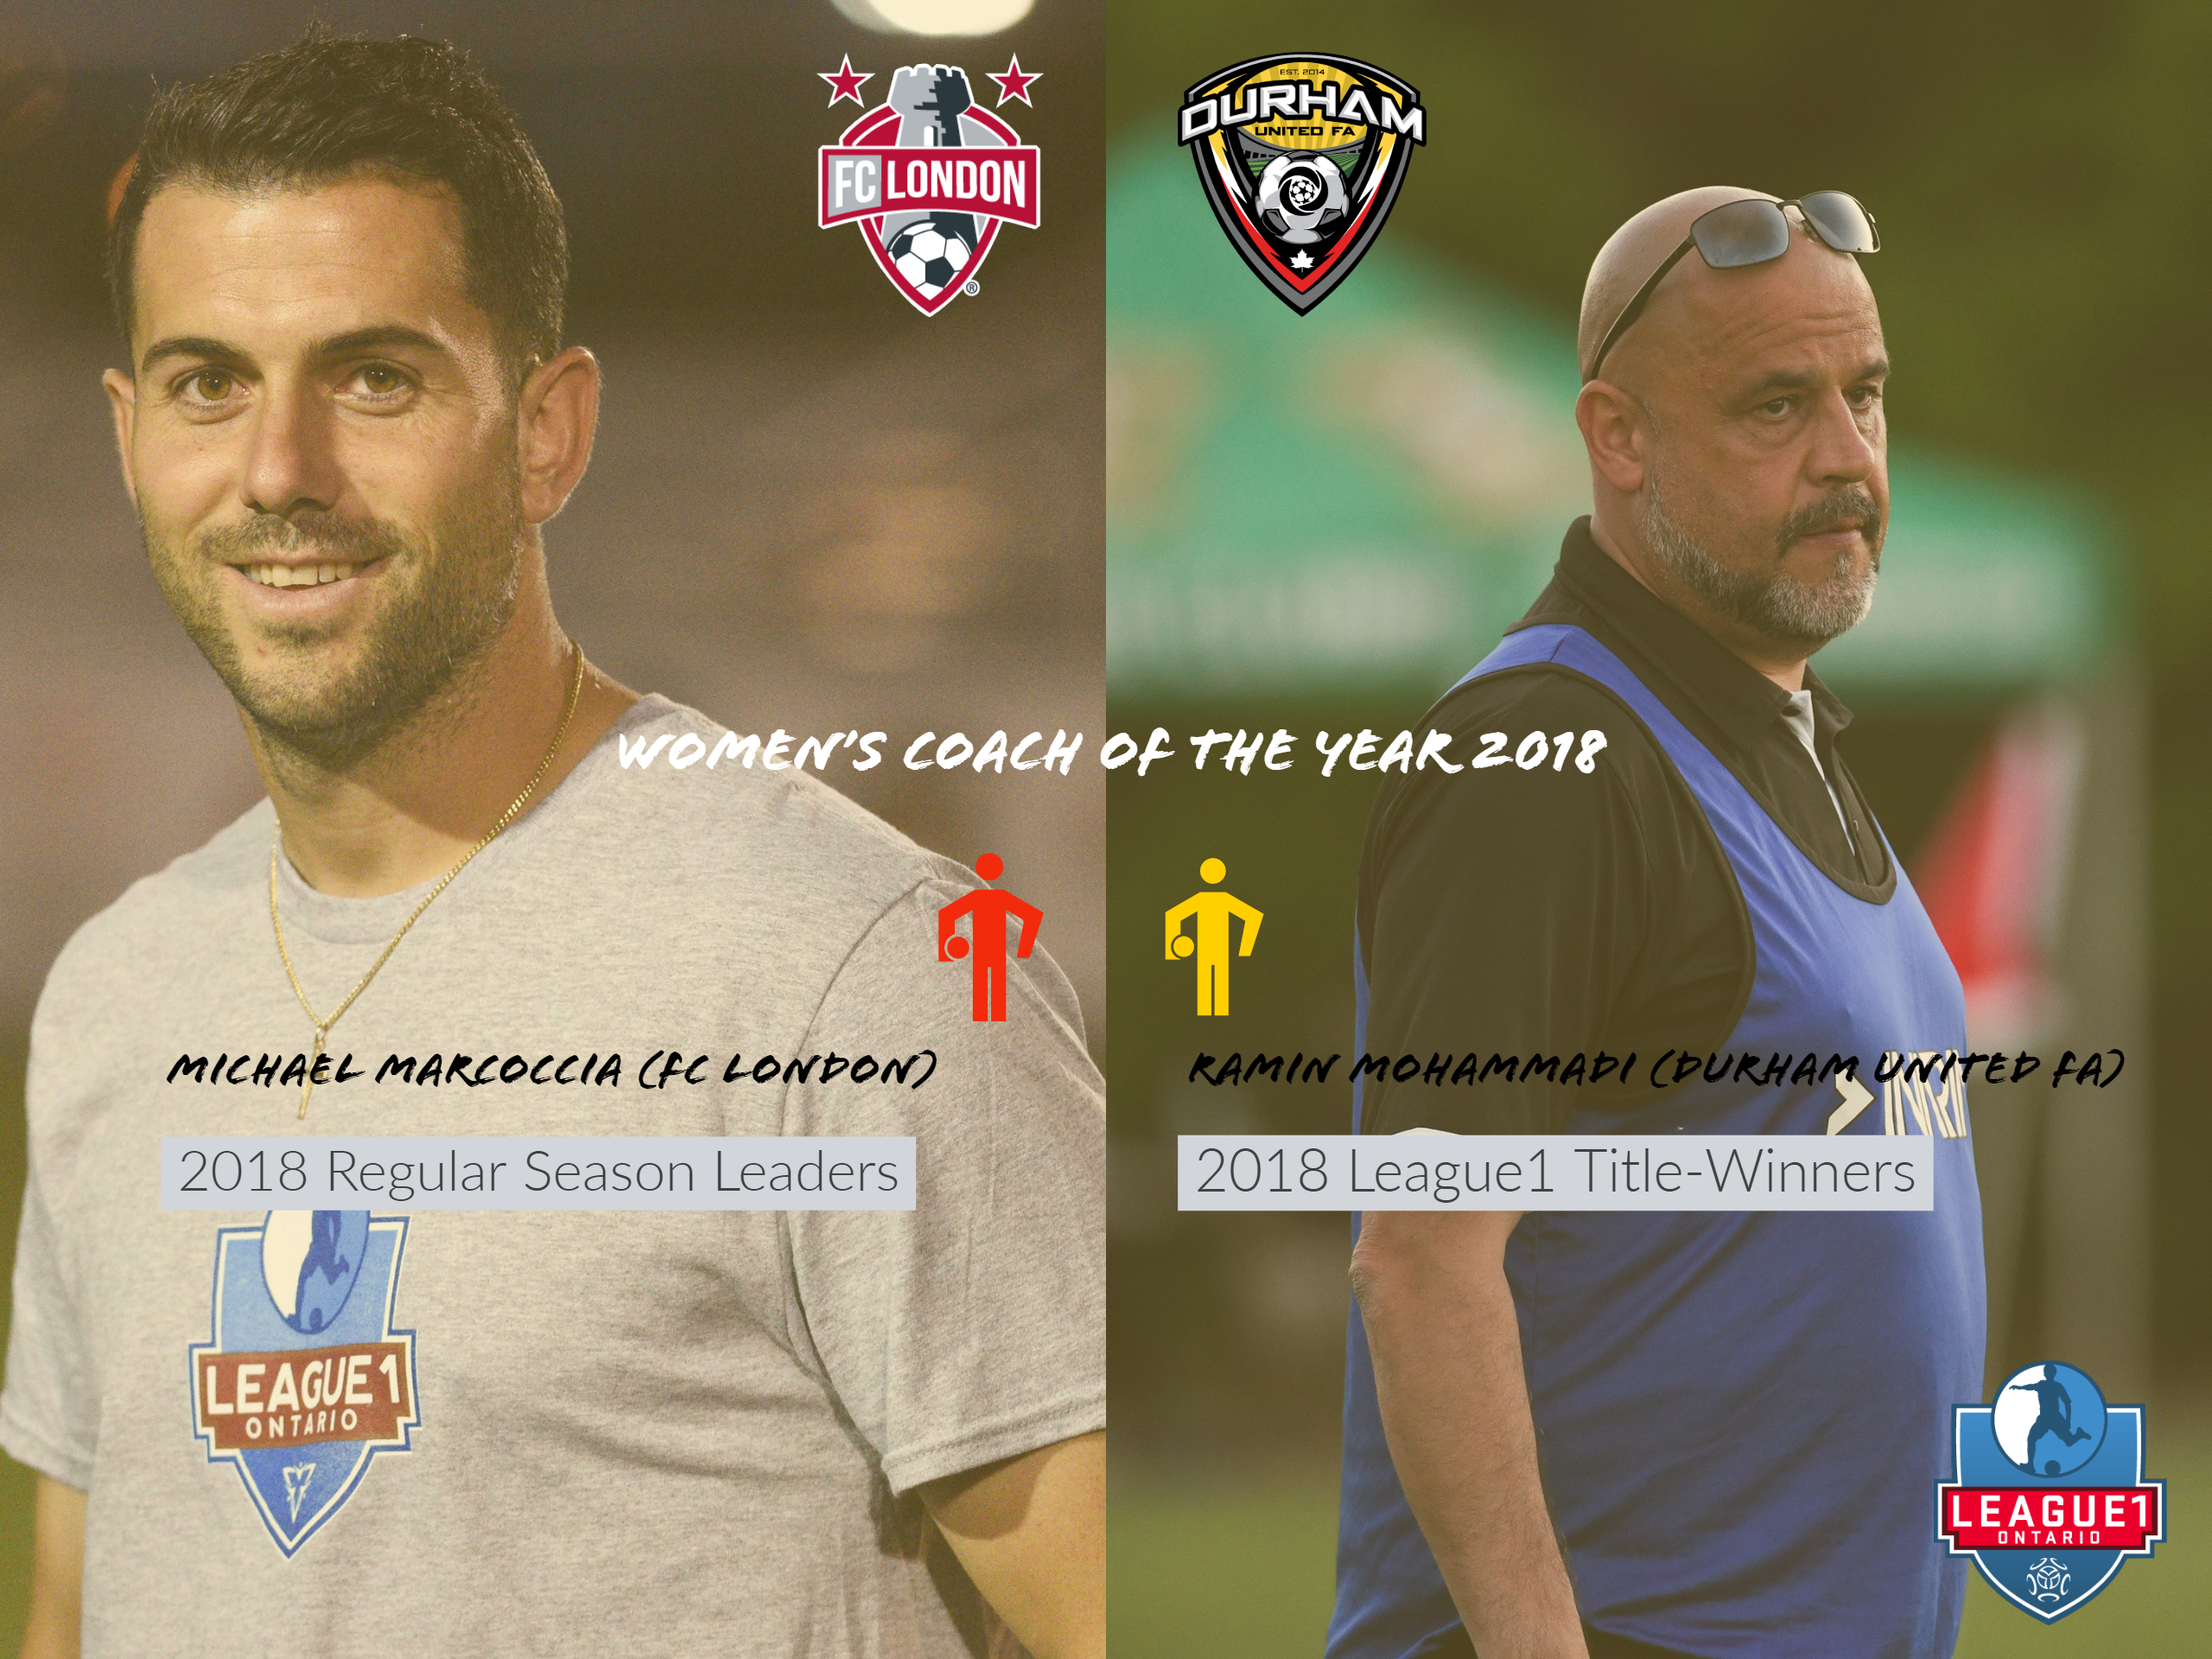 durham s mohammadi and london s marcoccia to share women s coach of